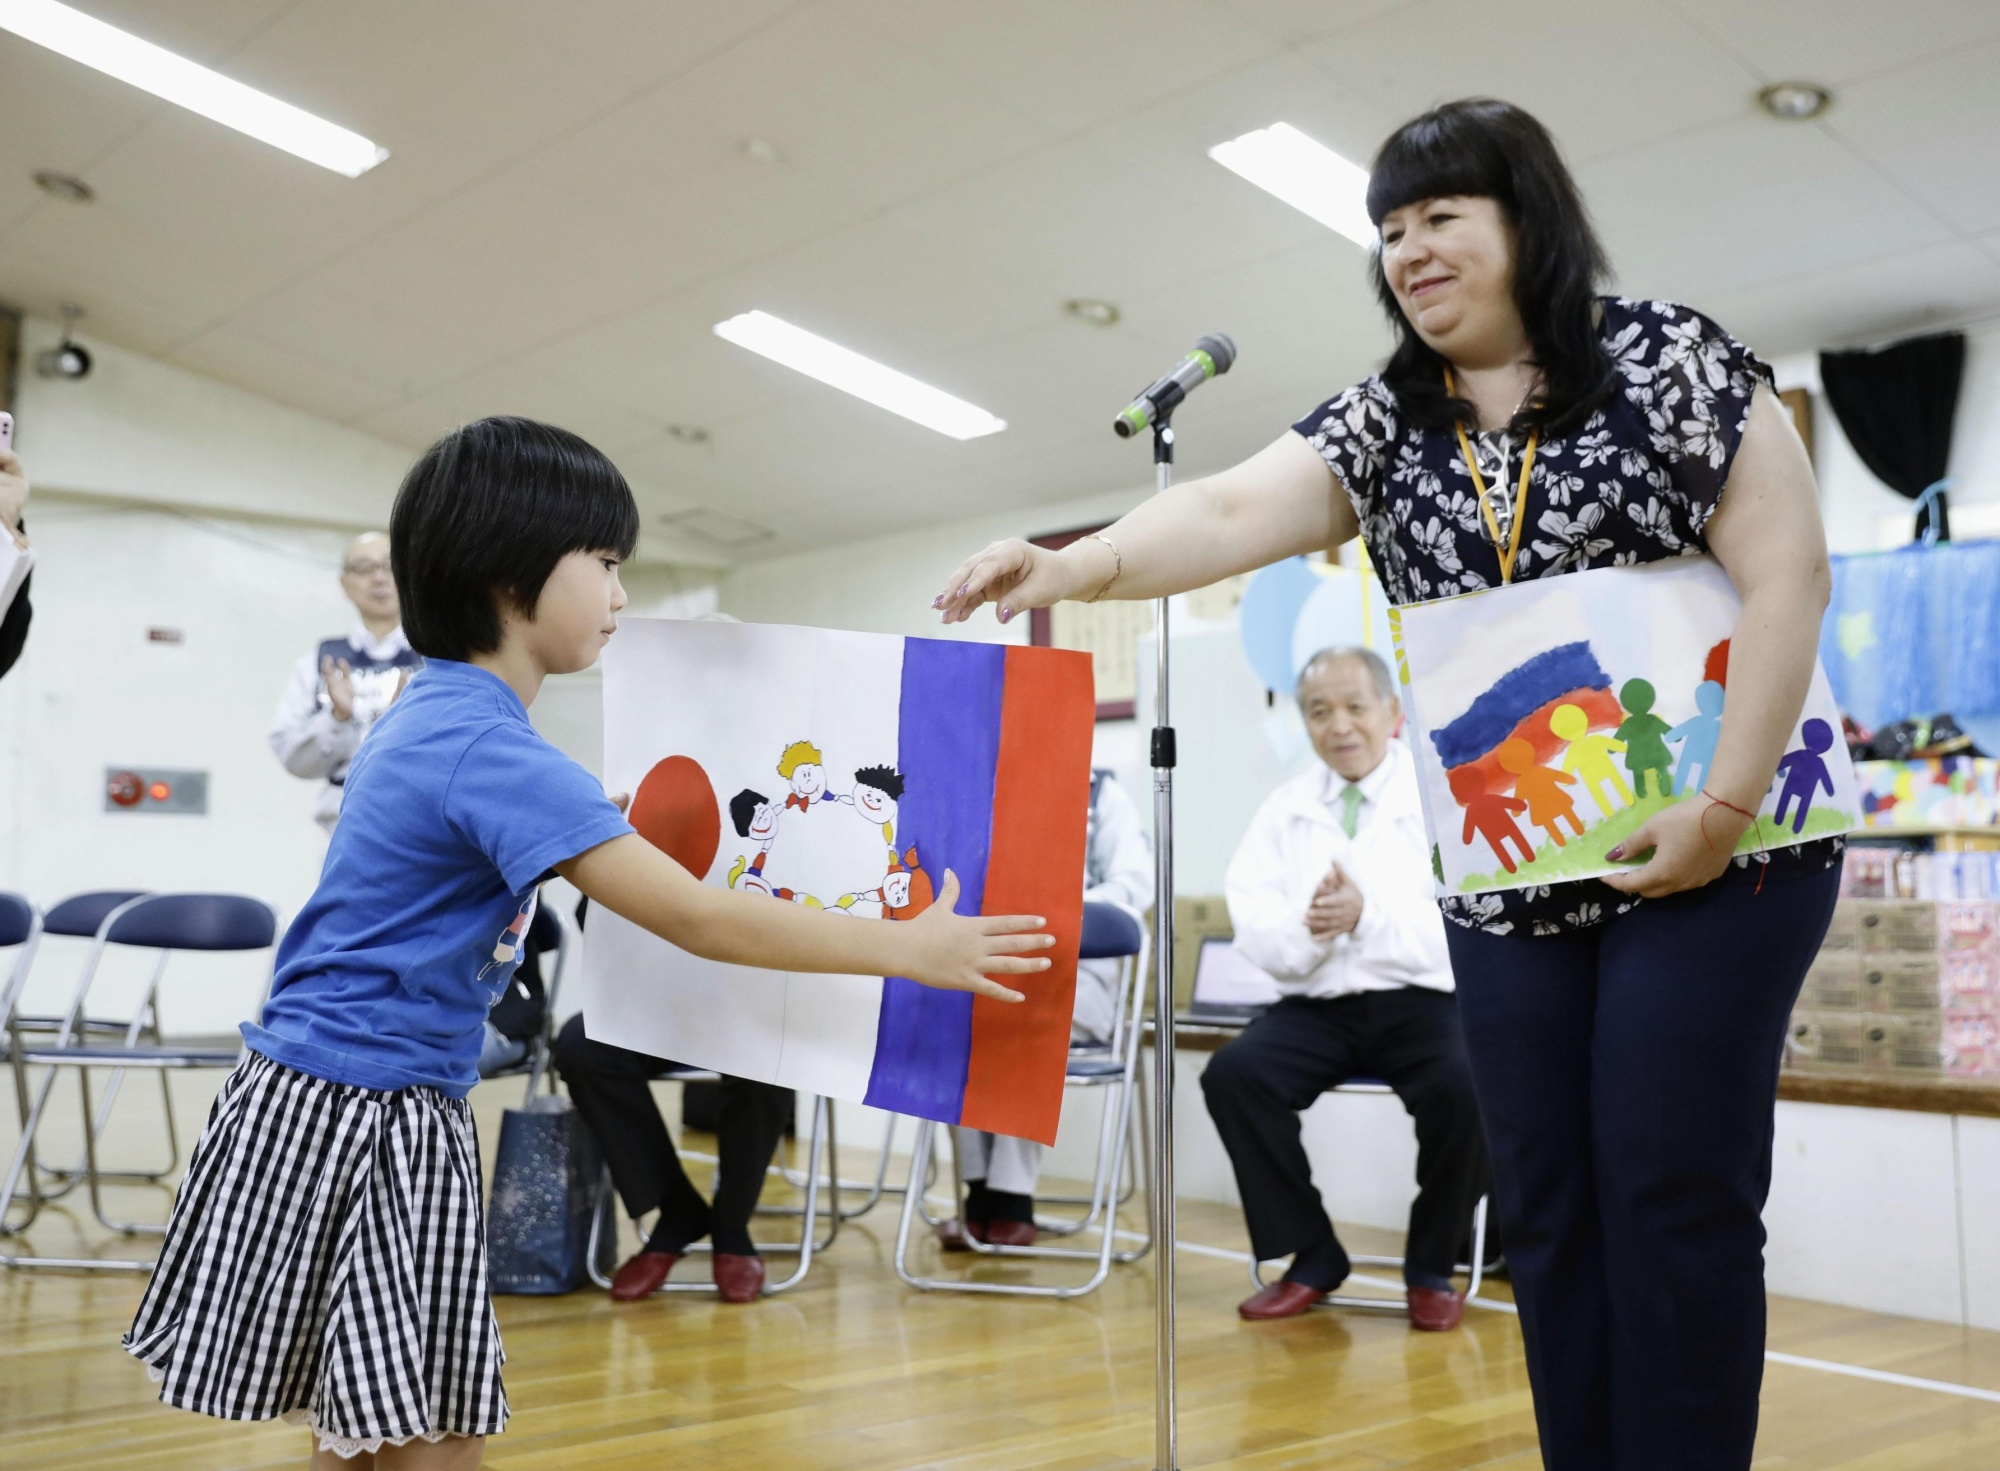 A Russian woman presents paintings made by Russian children at a nursery school in Mukawa, Hokkaido, on Saturday. | KYODO